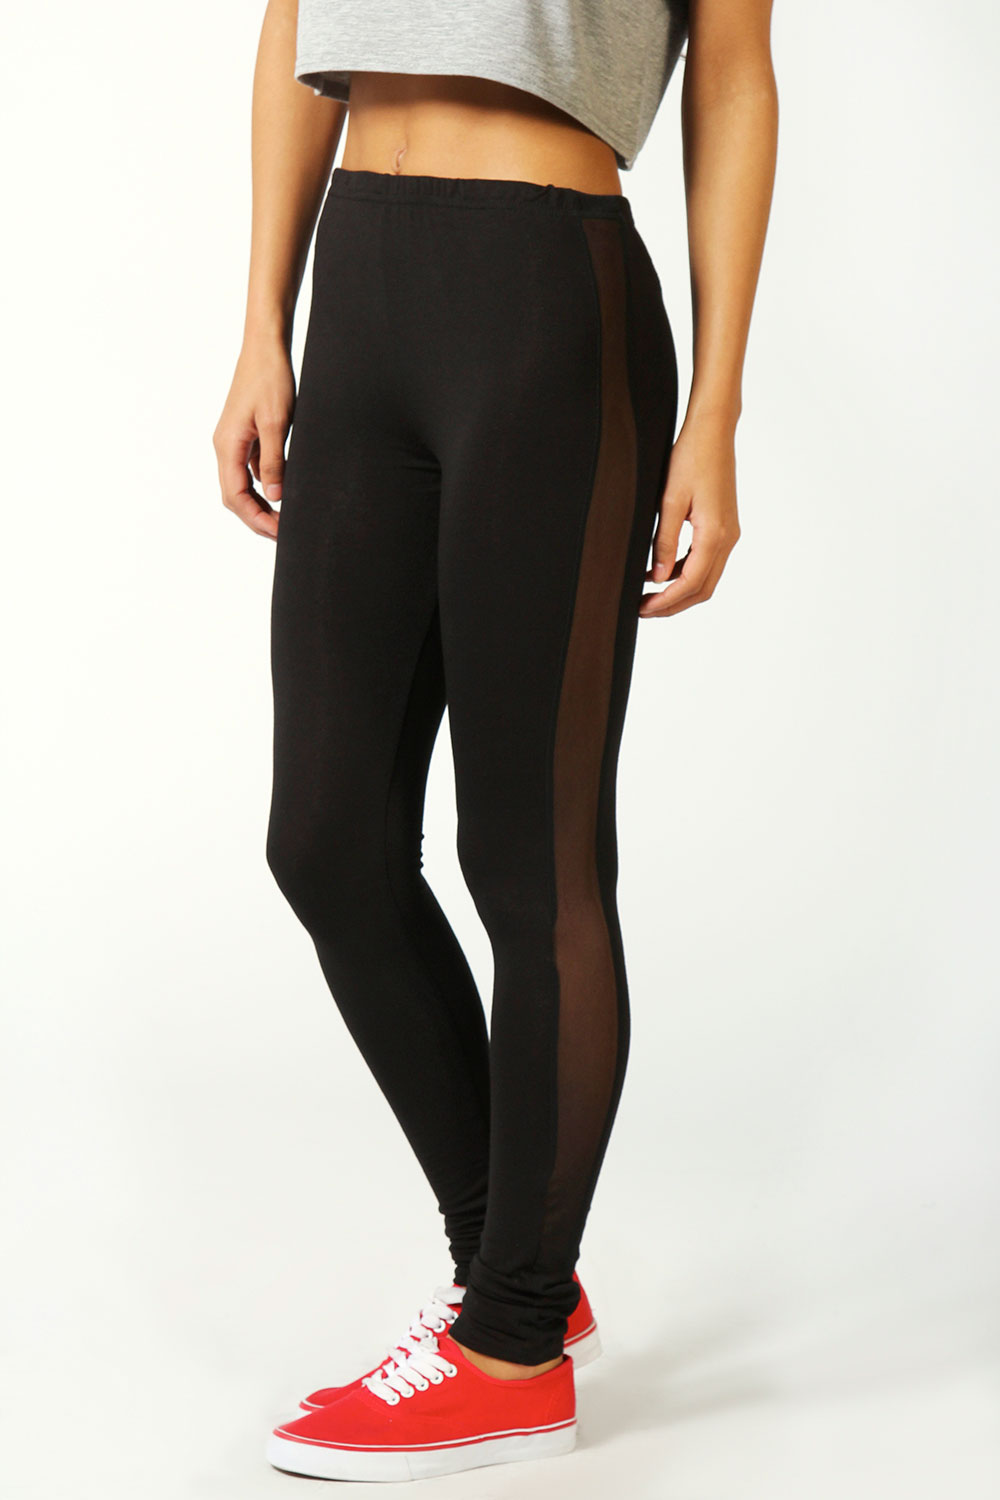 Boohoo Lottie Mesh Side Panel Jersey Leggings in Black | eBay